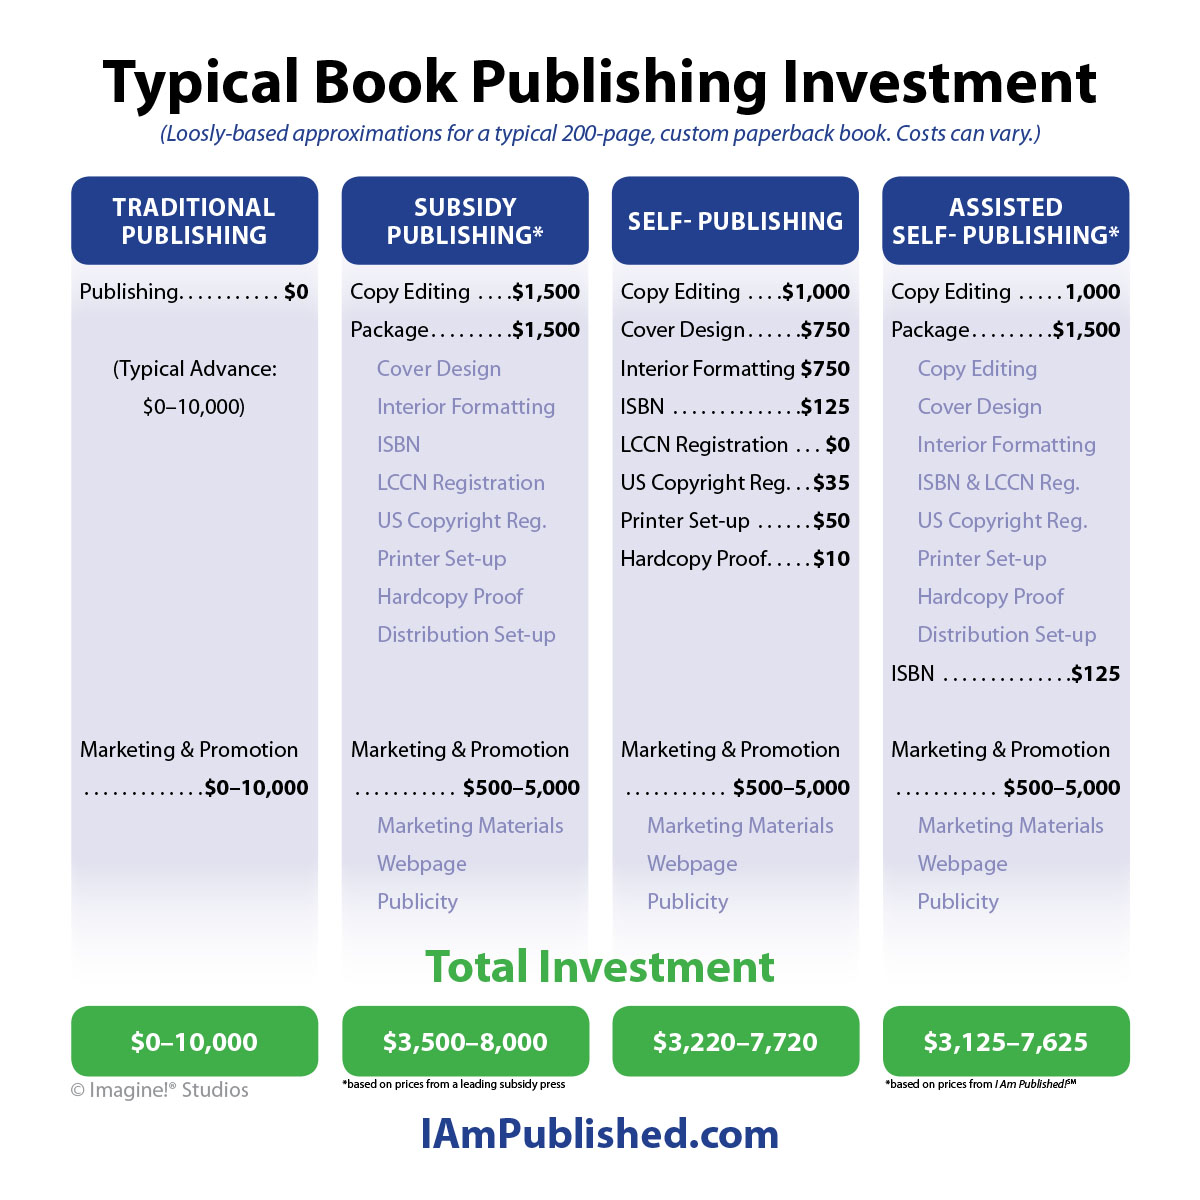 Typical Book Publishing Investment Comparison